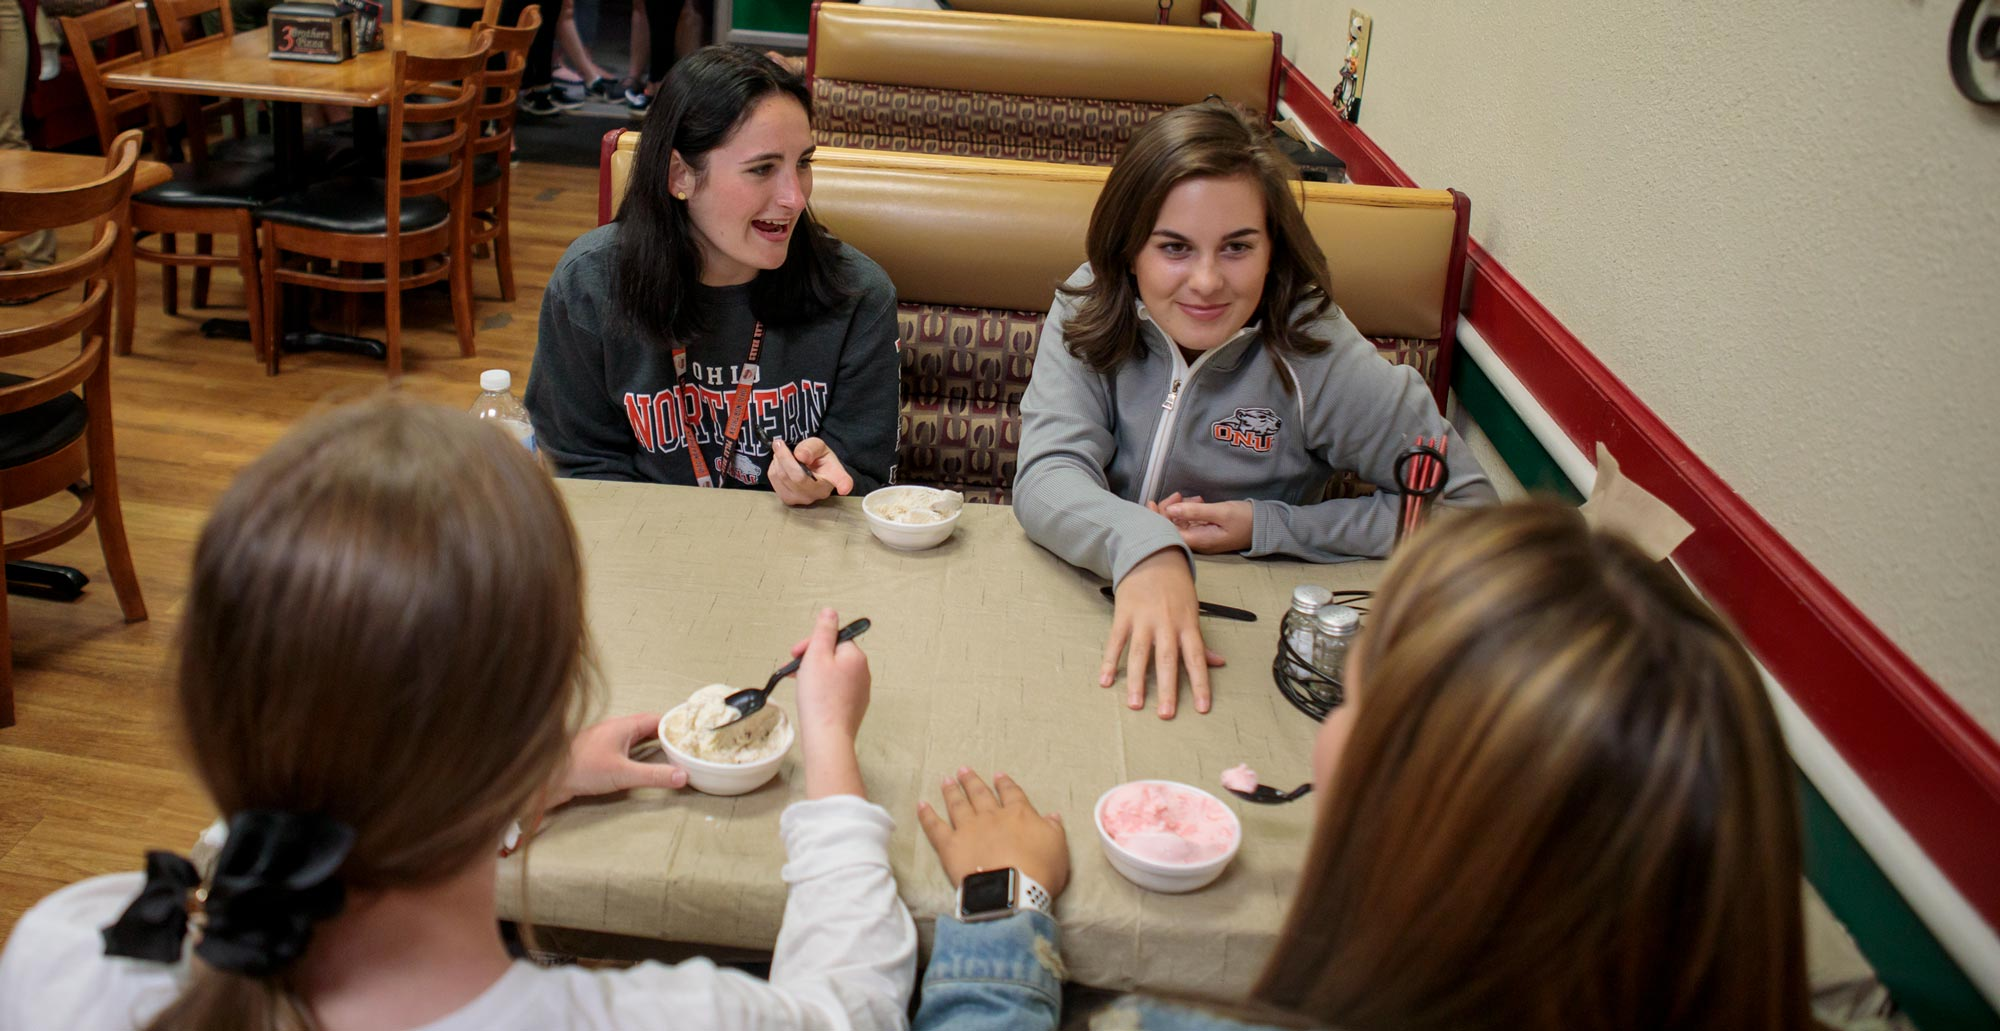 From left, first-year pharmacy student Denise Williams and freshman Isabella Orofino talk and eat ice cream at Three Brothers Pizza.